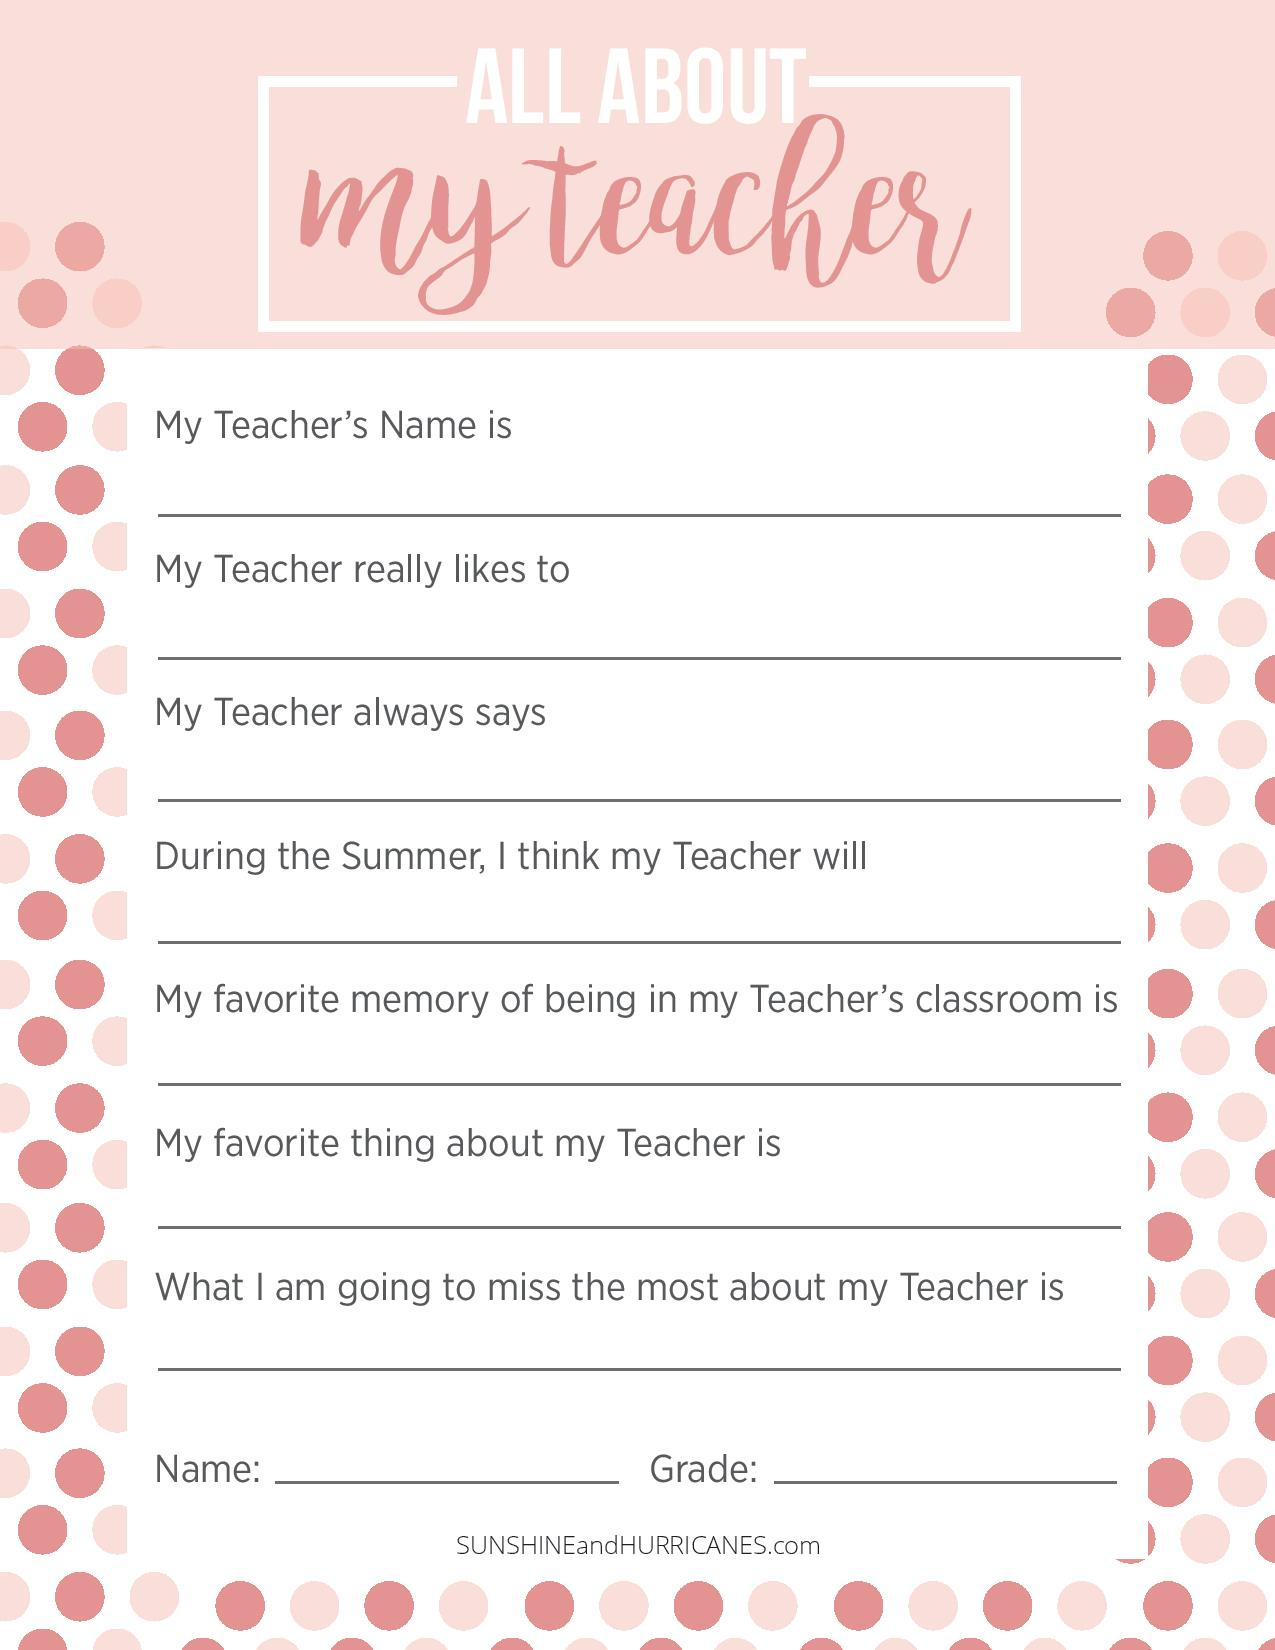 This teacher appreciation week questionnaire is the perfect teacher gift for any occasion. Personalize and meaningful it is a gift she will always treasure. SunshineandHurricanes.com